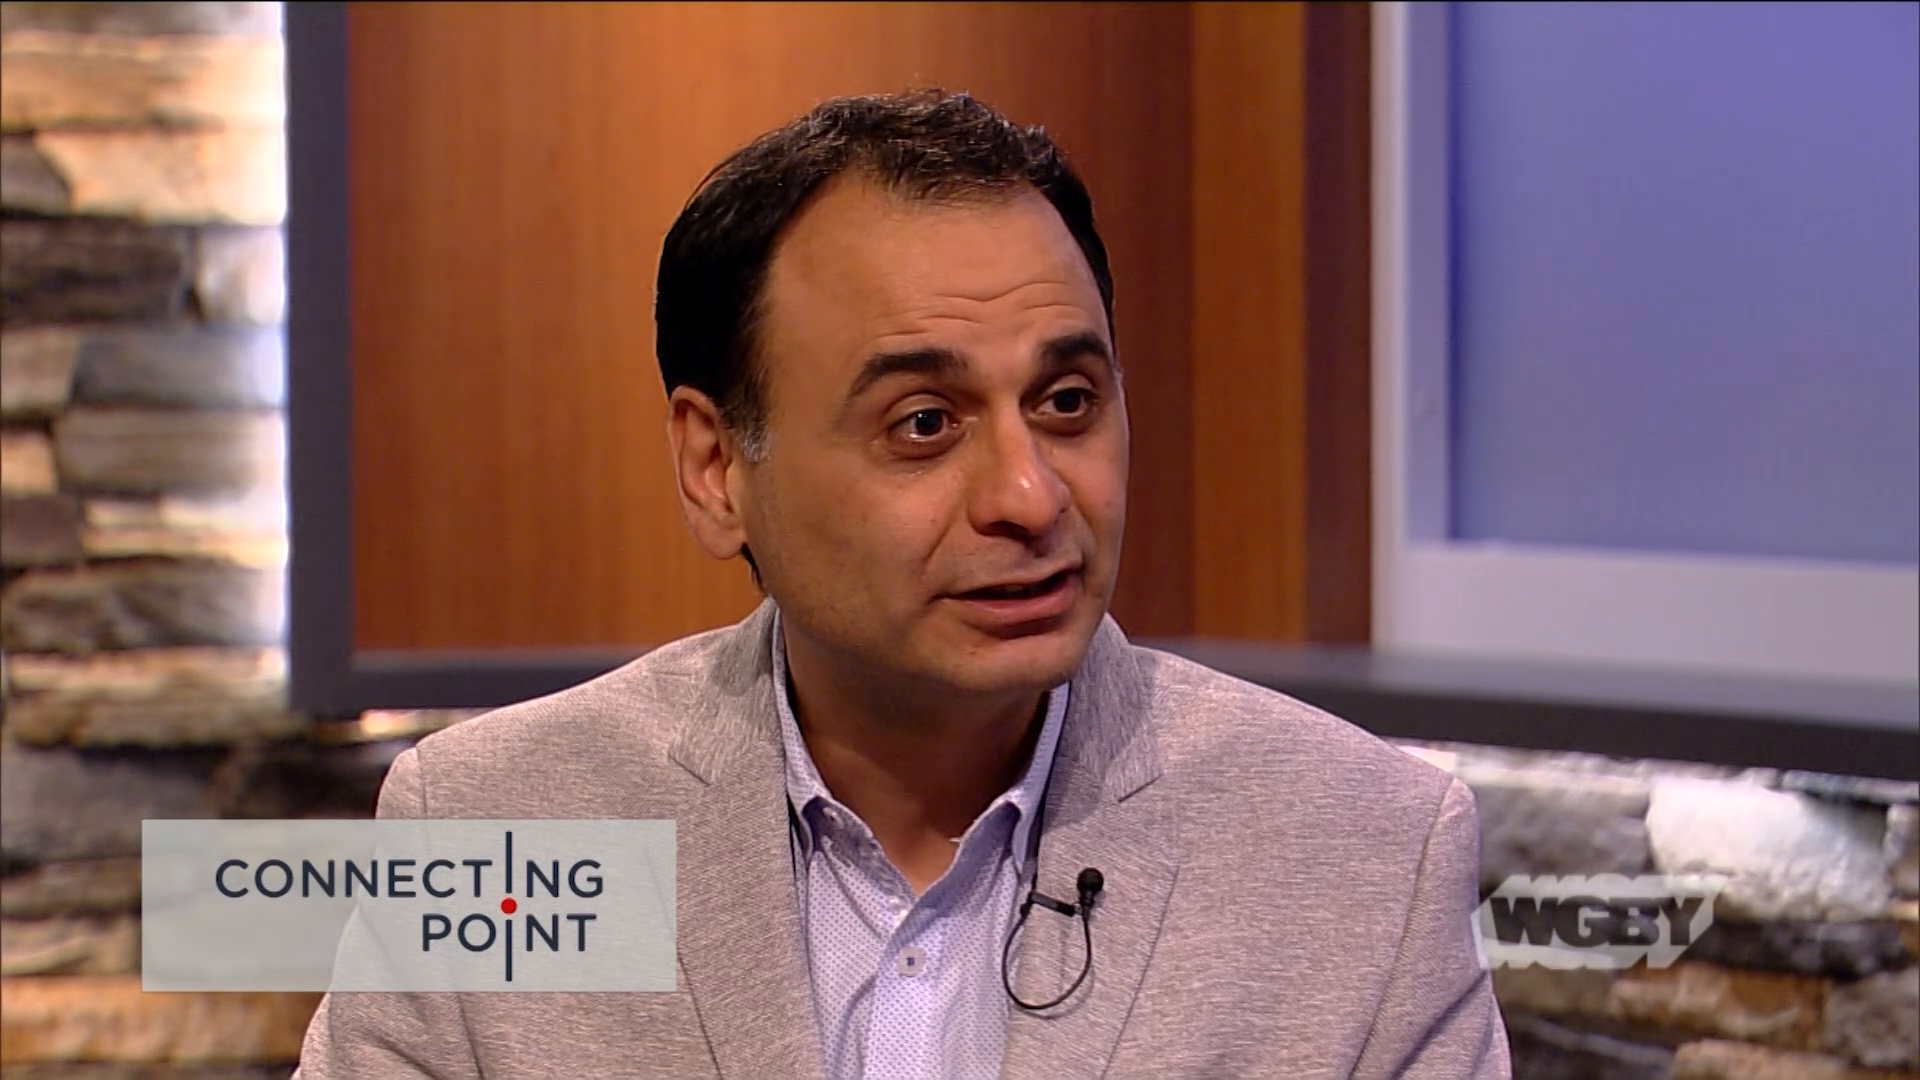 Baystate Medical Center cardiologist Dr. Amir Lotfi discusses a new A-fib procedure that reduces stroke risk for patients with with an irregular heartbeat.